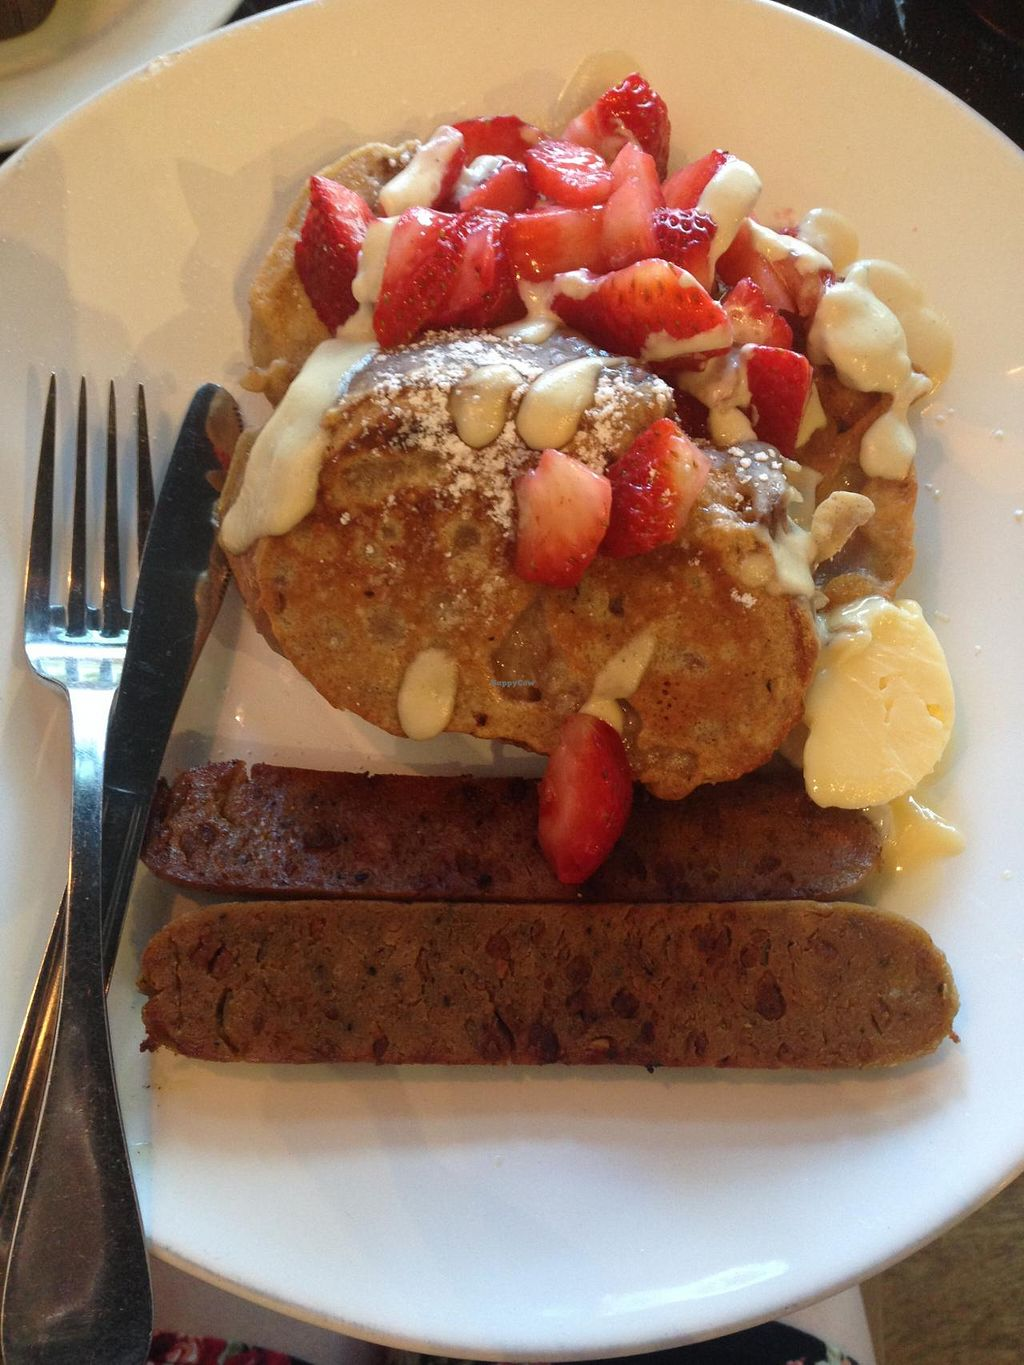 "Photo of Timeless Coffee Roasters and Bakery  by <a href=""/members/profile/jamiemichelle_xvx"">jamiemichelle_xvx</a> <br/>Strawberry French Toast with vegan apple sage sausage <br/> June 5, 2014  - <a href='/contact/abuse/image/36793/71404'>Report</a>"